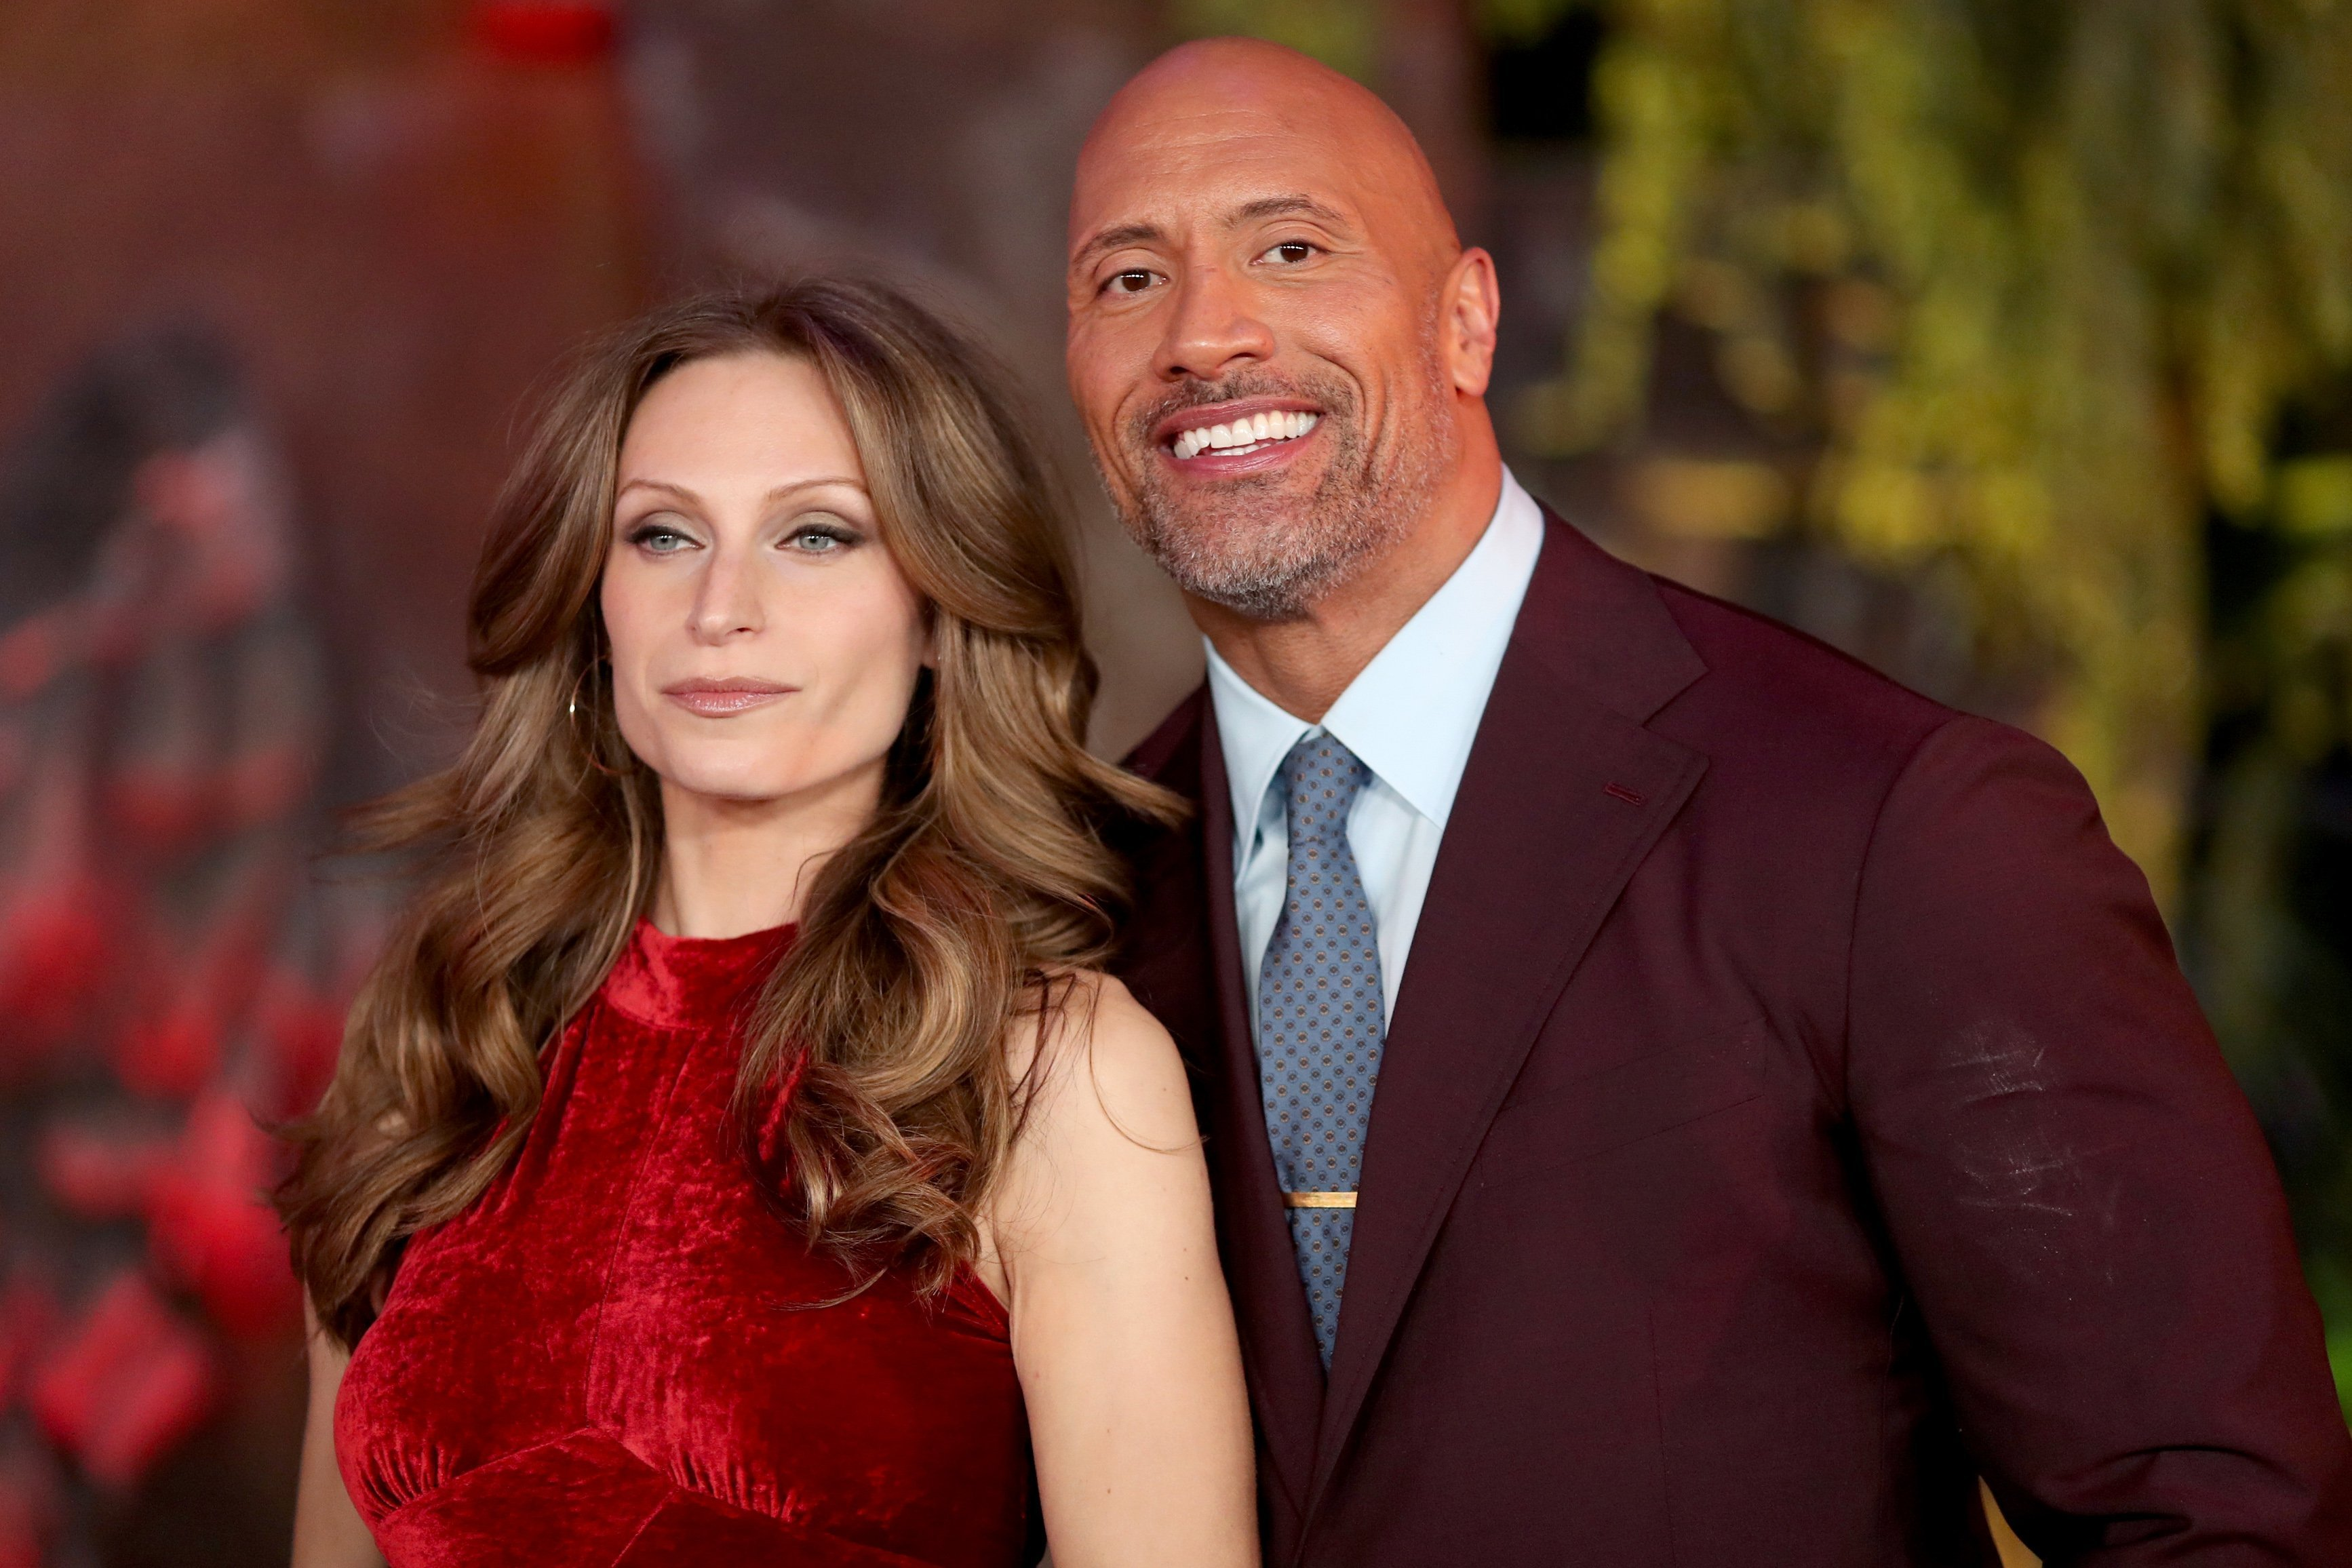 Lauren Hashian y Dwayne Johnson en el estreno de 'Jumanji: Welcome To The Jungle', el 11 de diciembre de 2017 en Hollywood, California. | Imagen: Getty Images